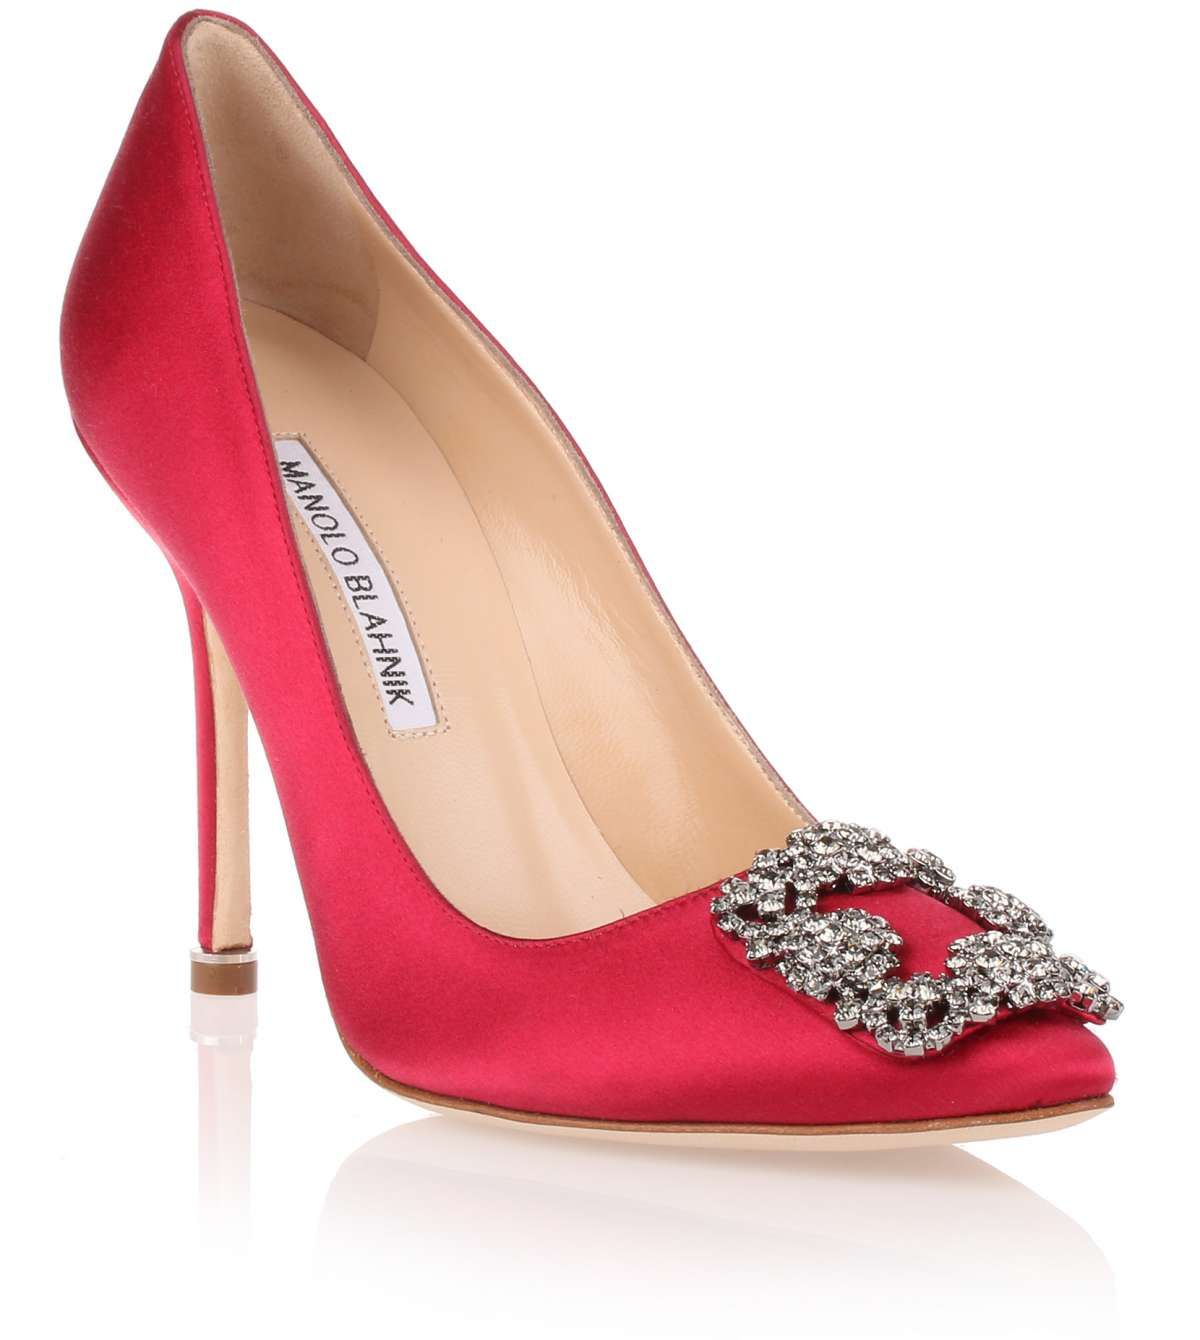 19cee3ccf4ea Cerise satin evening pump with a classic fume grey crystal embellished  ornament from Manolo Blahnik. The Hangisi pump has a slightly pointed toe